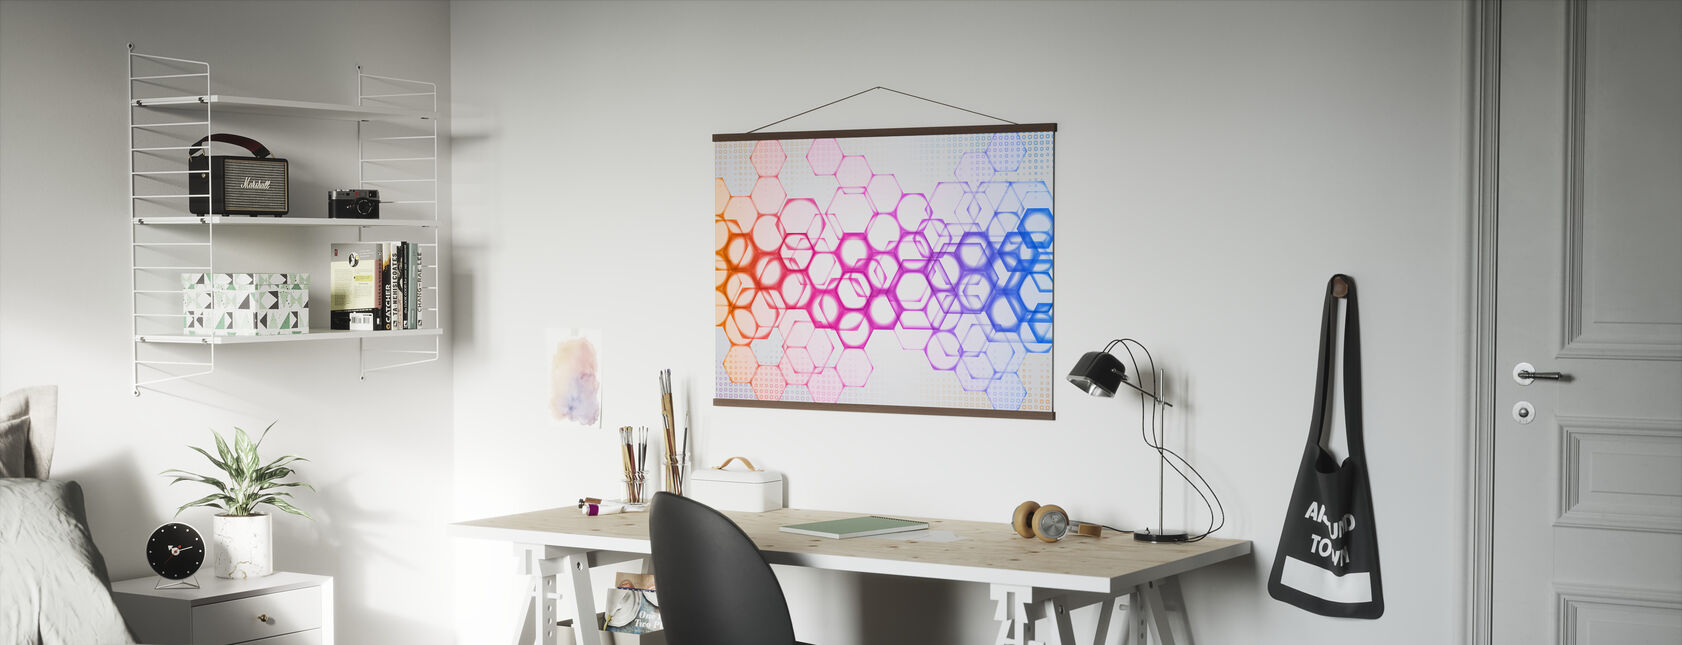 Out of Focus - Poster - Office